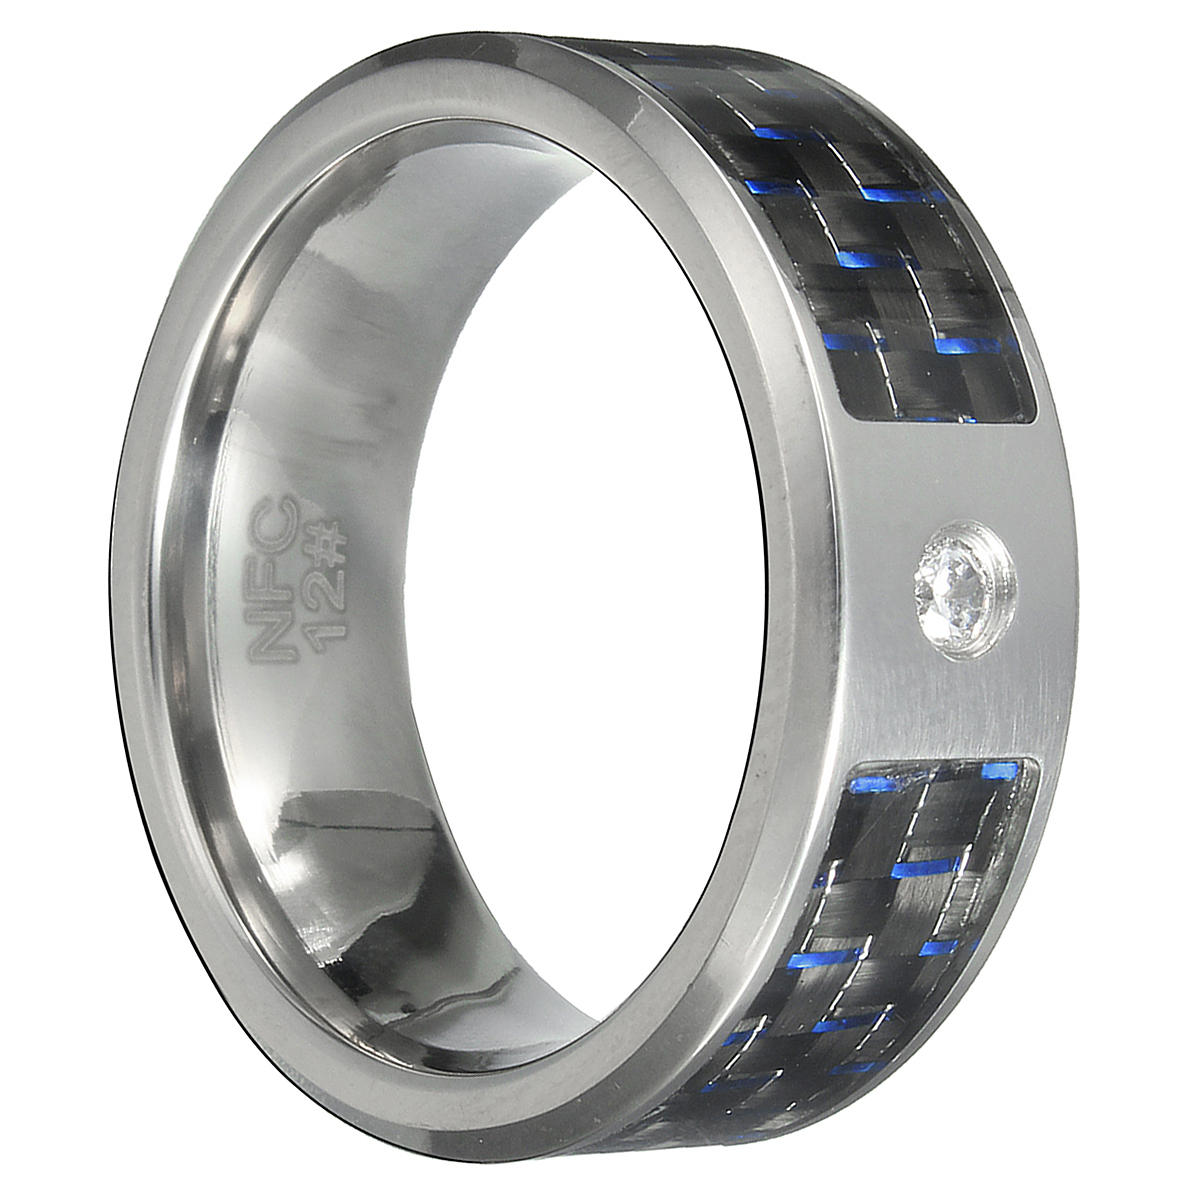 smart rings magic wear nfc ring for android windows nfc ...